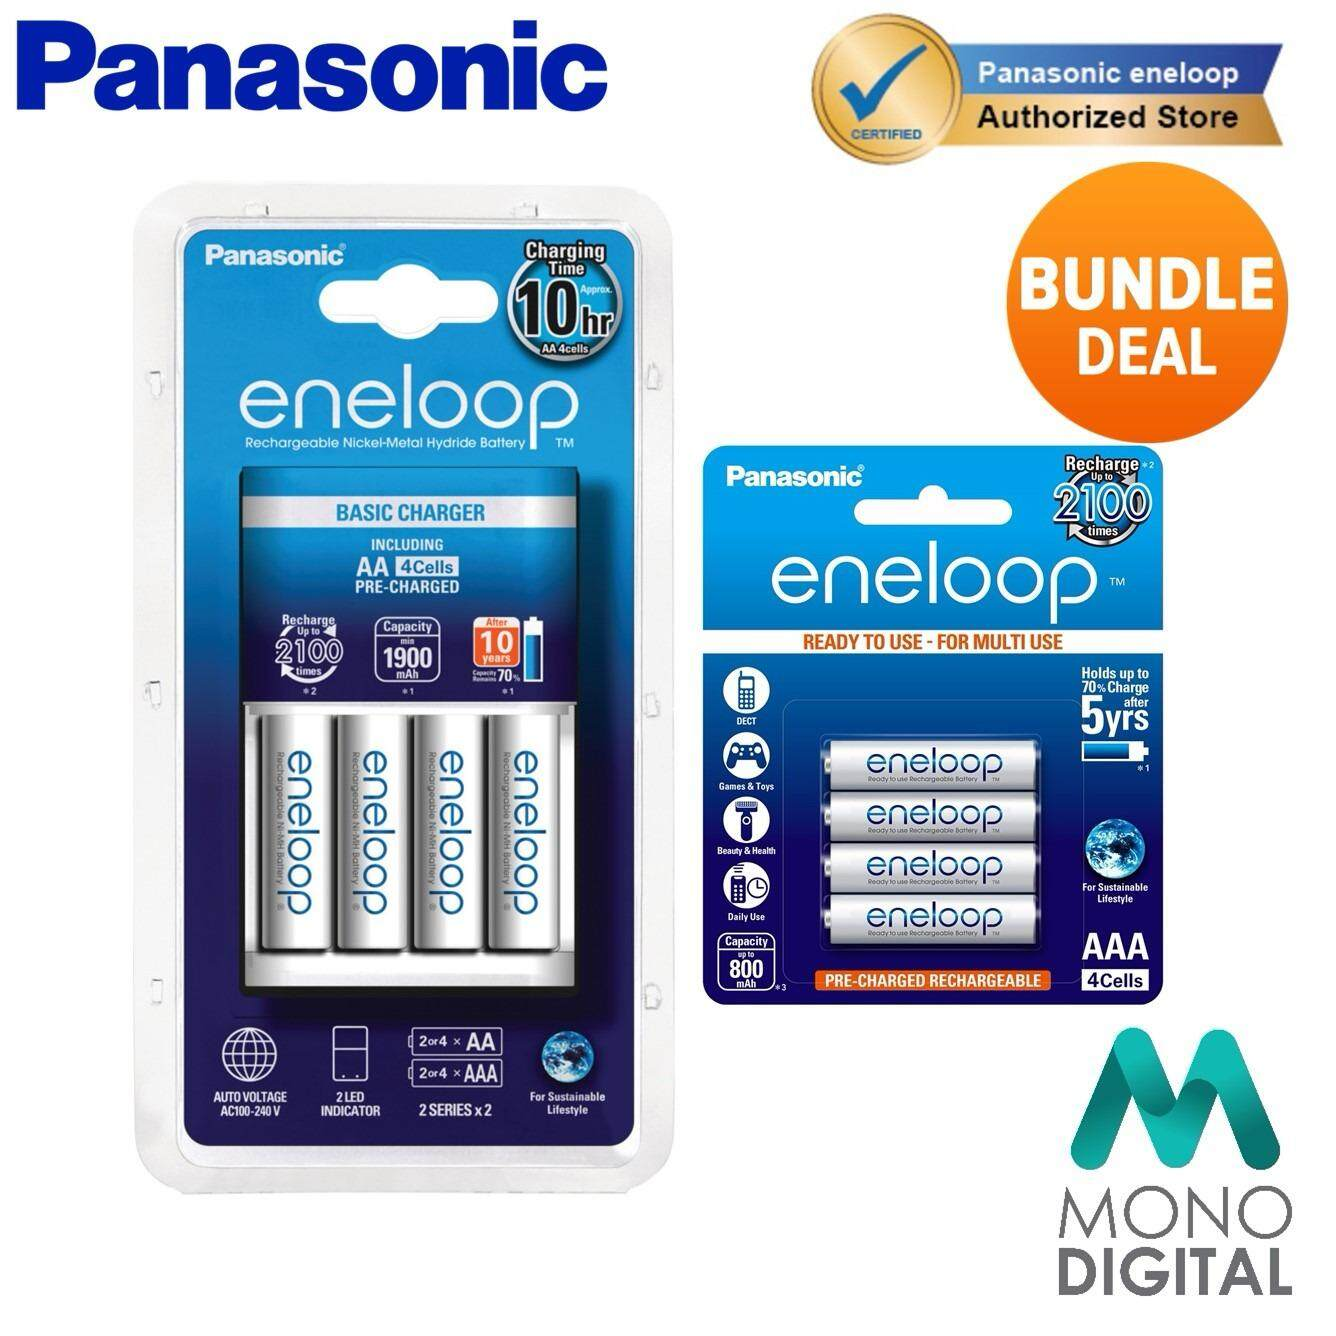 Panasonic Eneloop Basic Charger With 4 Cells Bundle Eneloop AAA 4 Cells Eneloop Rechargeable Battery (Panasonic Malaysia) Malaysia